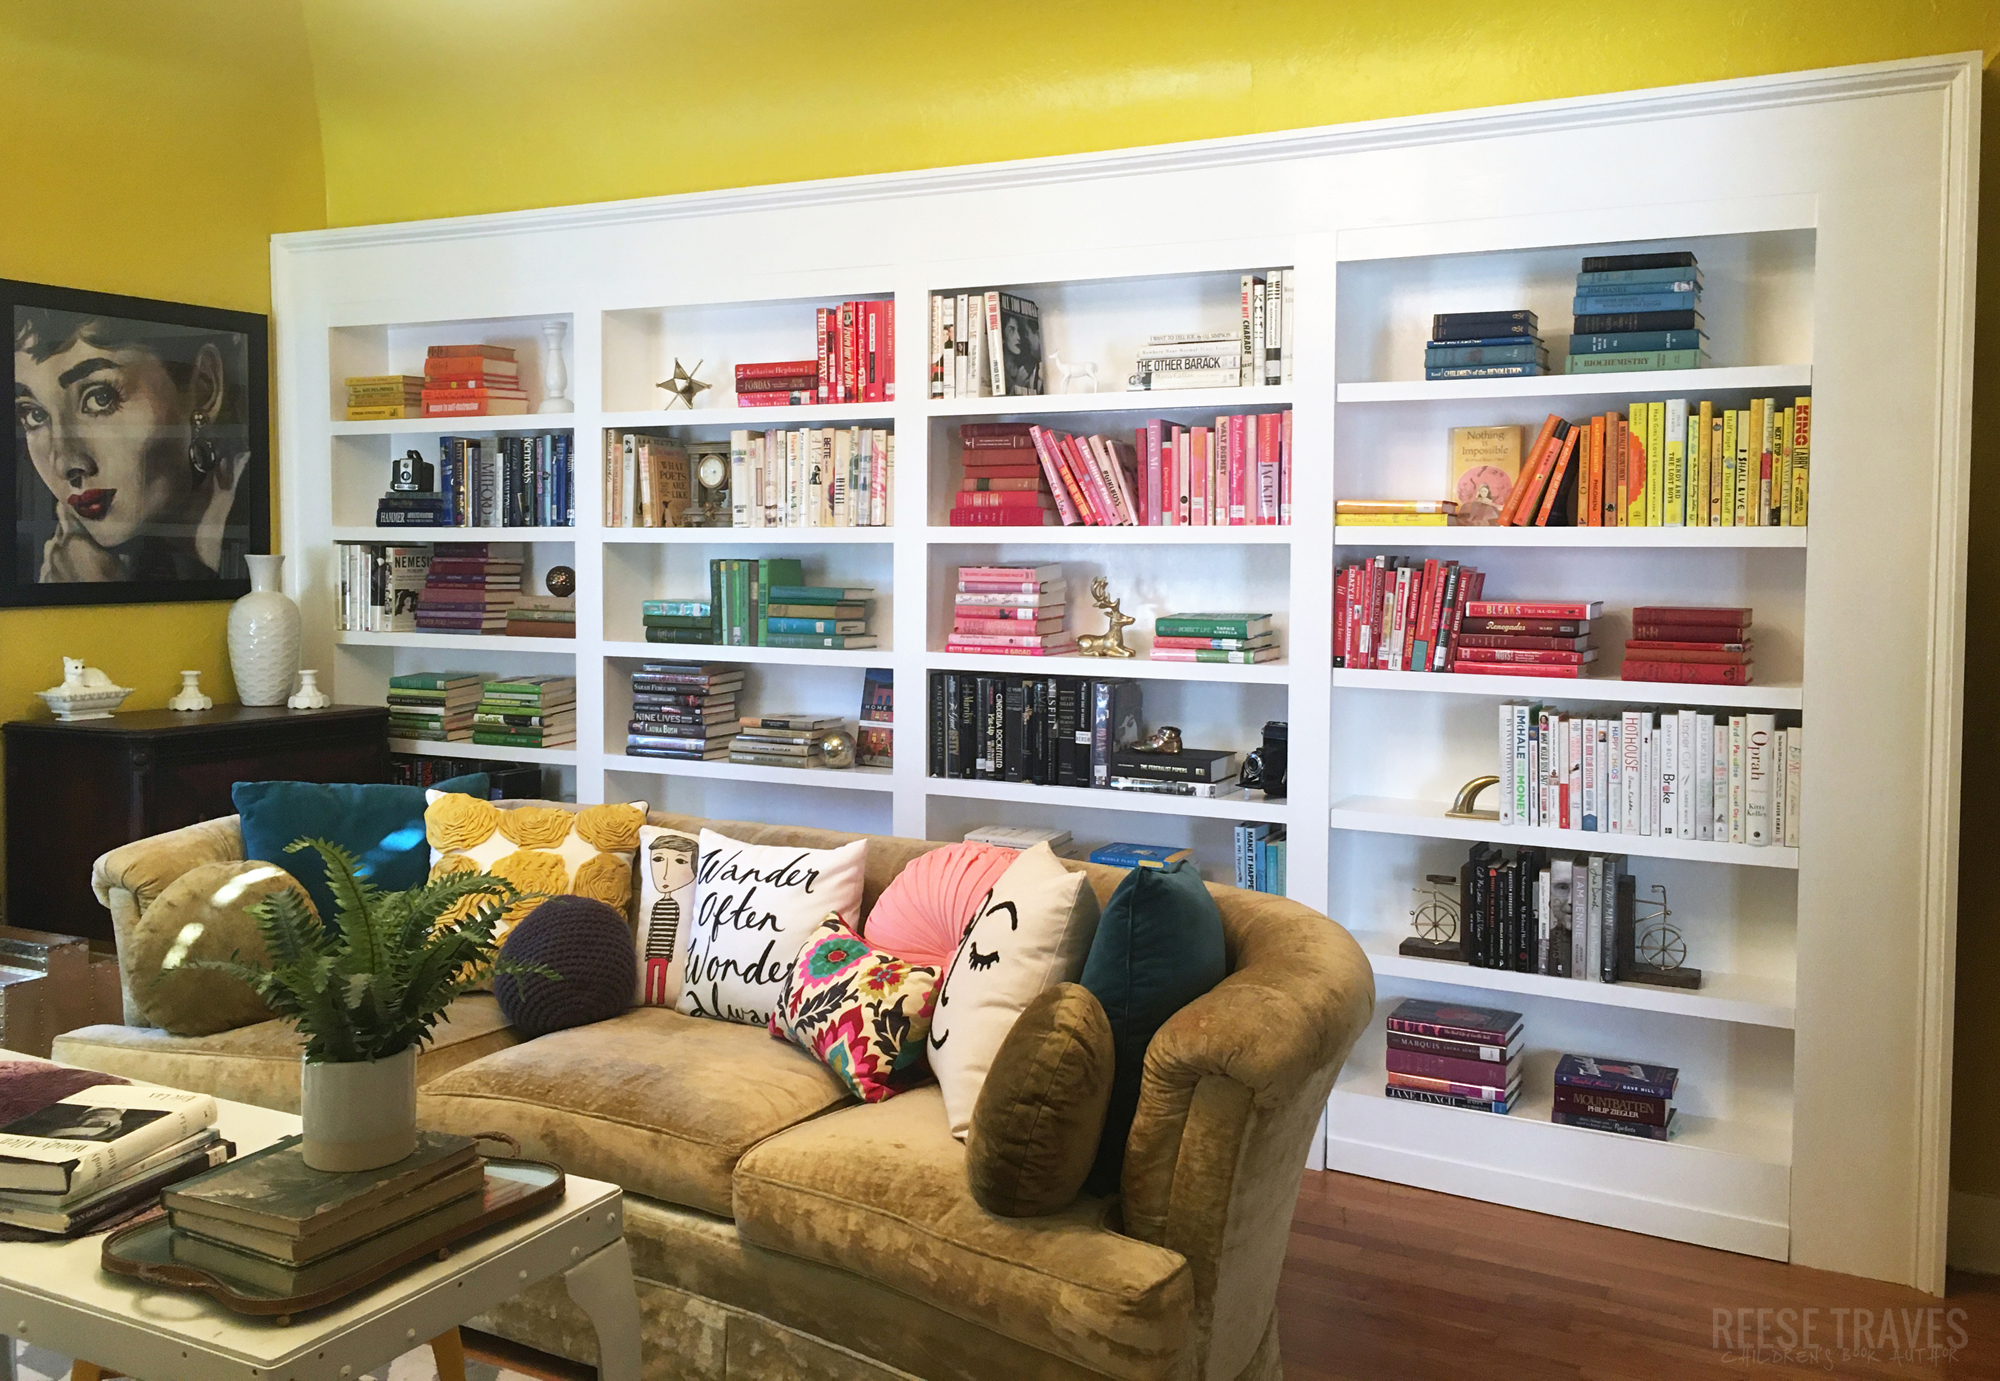 DIY built-in bookshelves with a hidden bookcase door and color blocked book styling. A fun way to add character and book storage to a room!